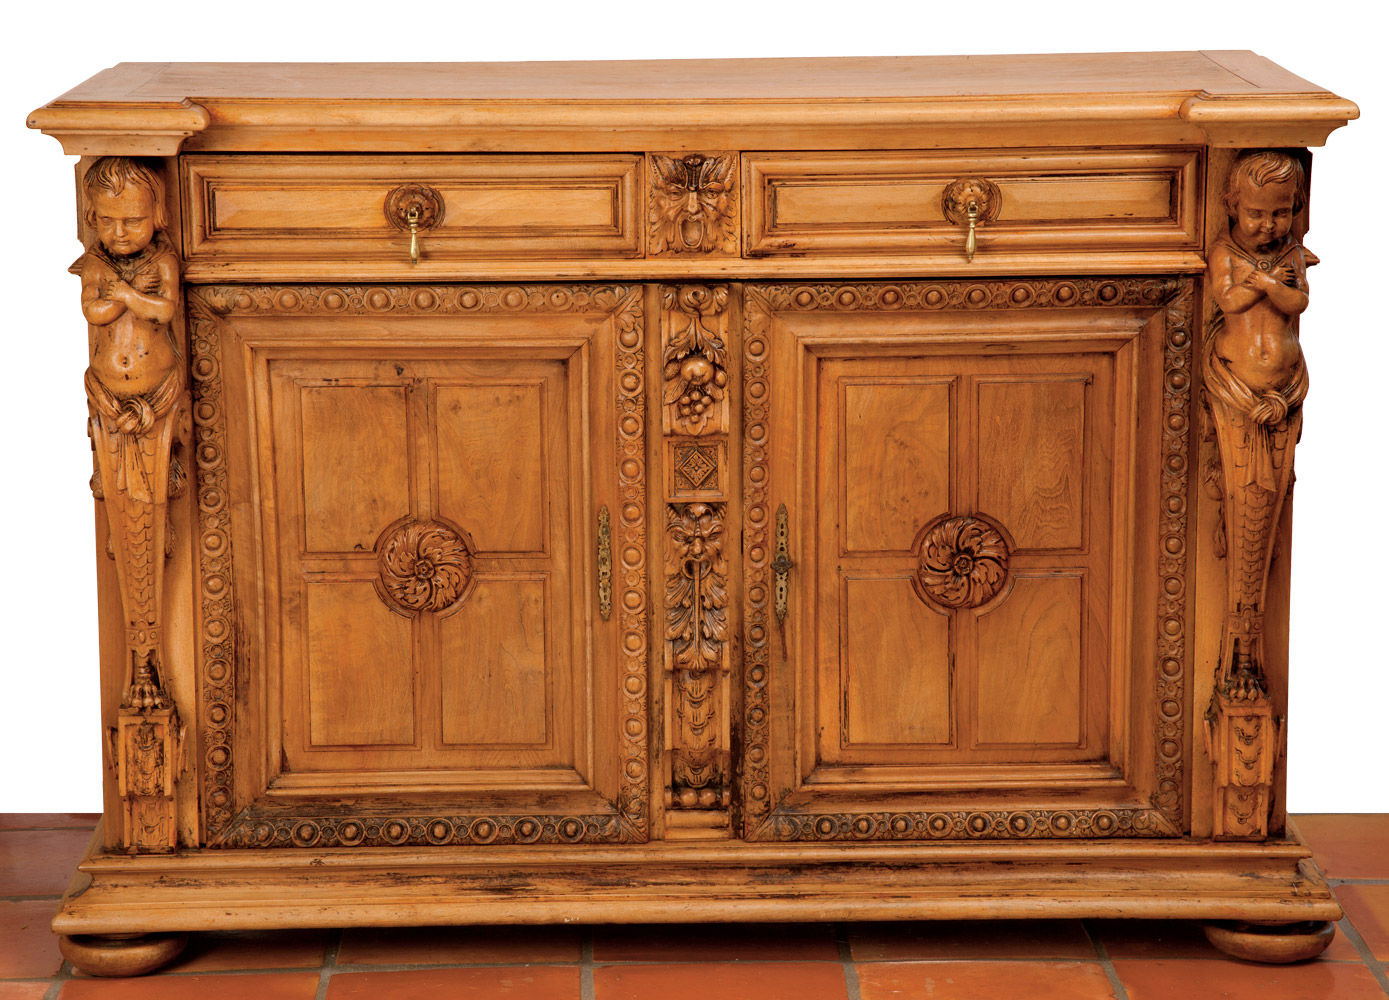 Furniture_Sideboard_12239